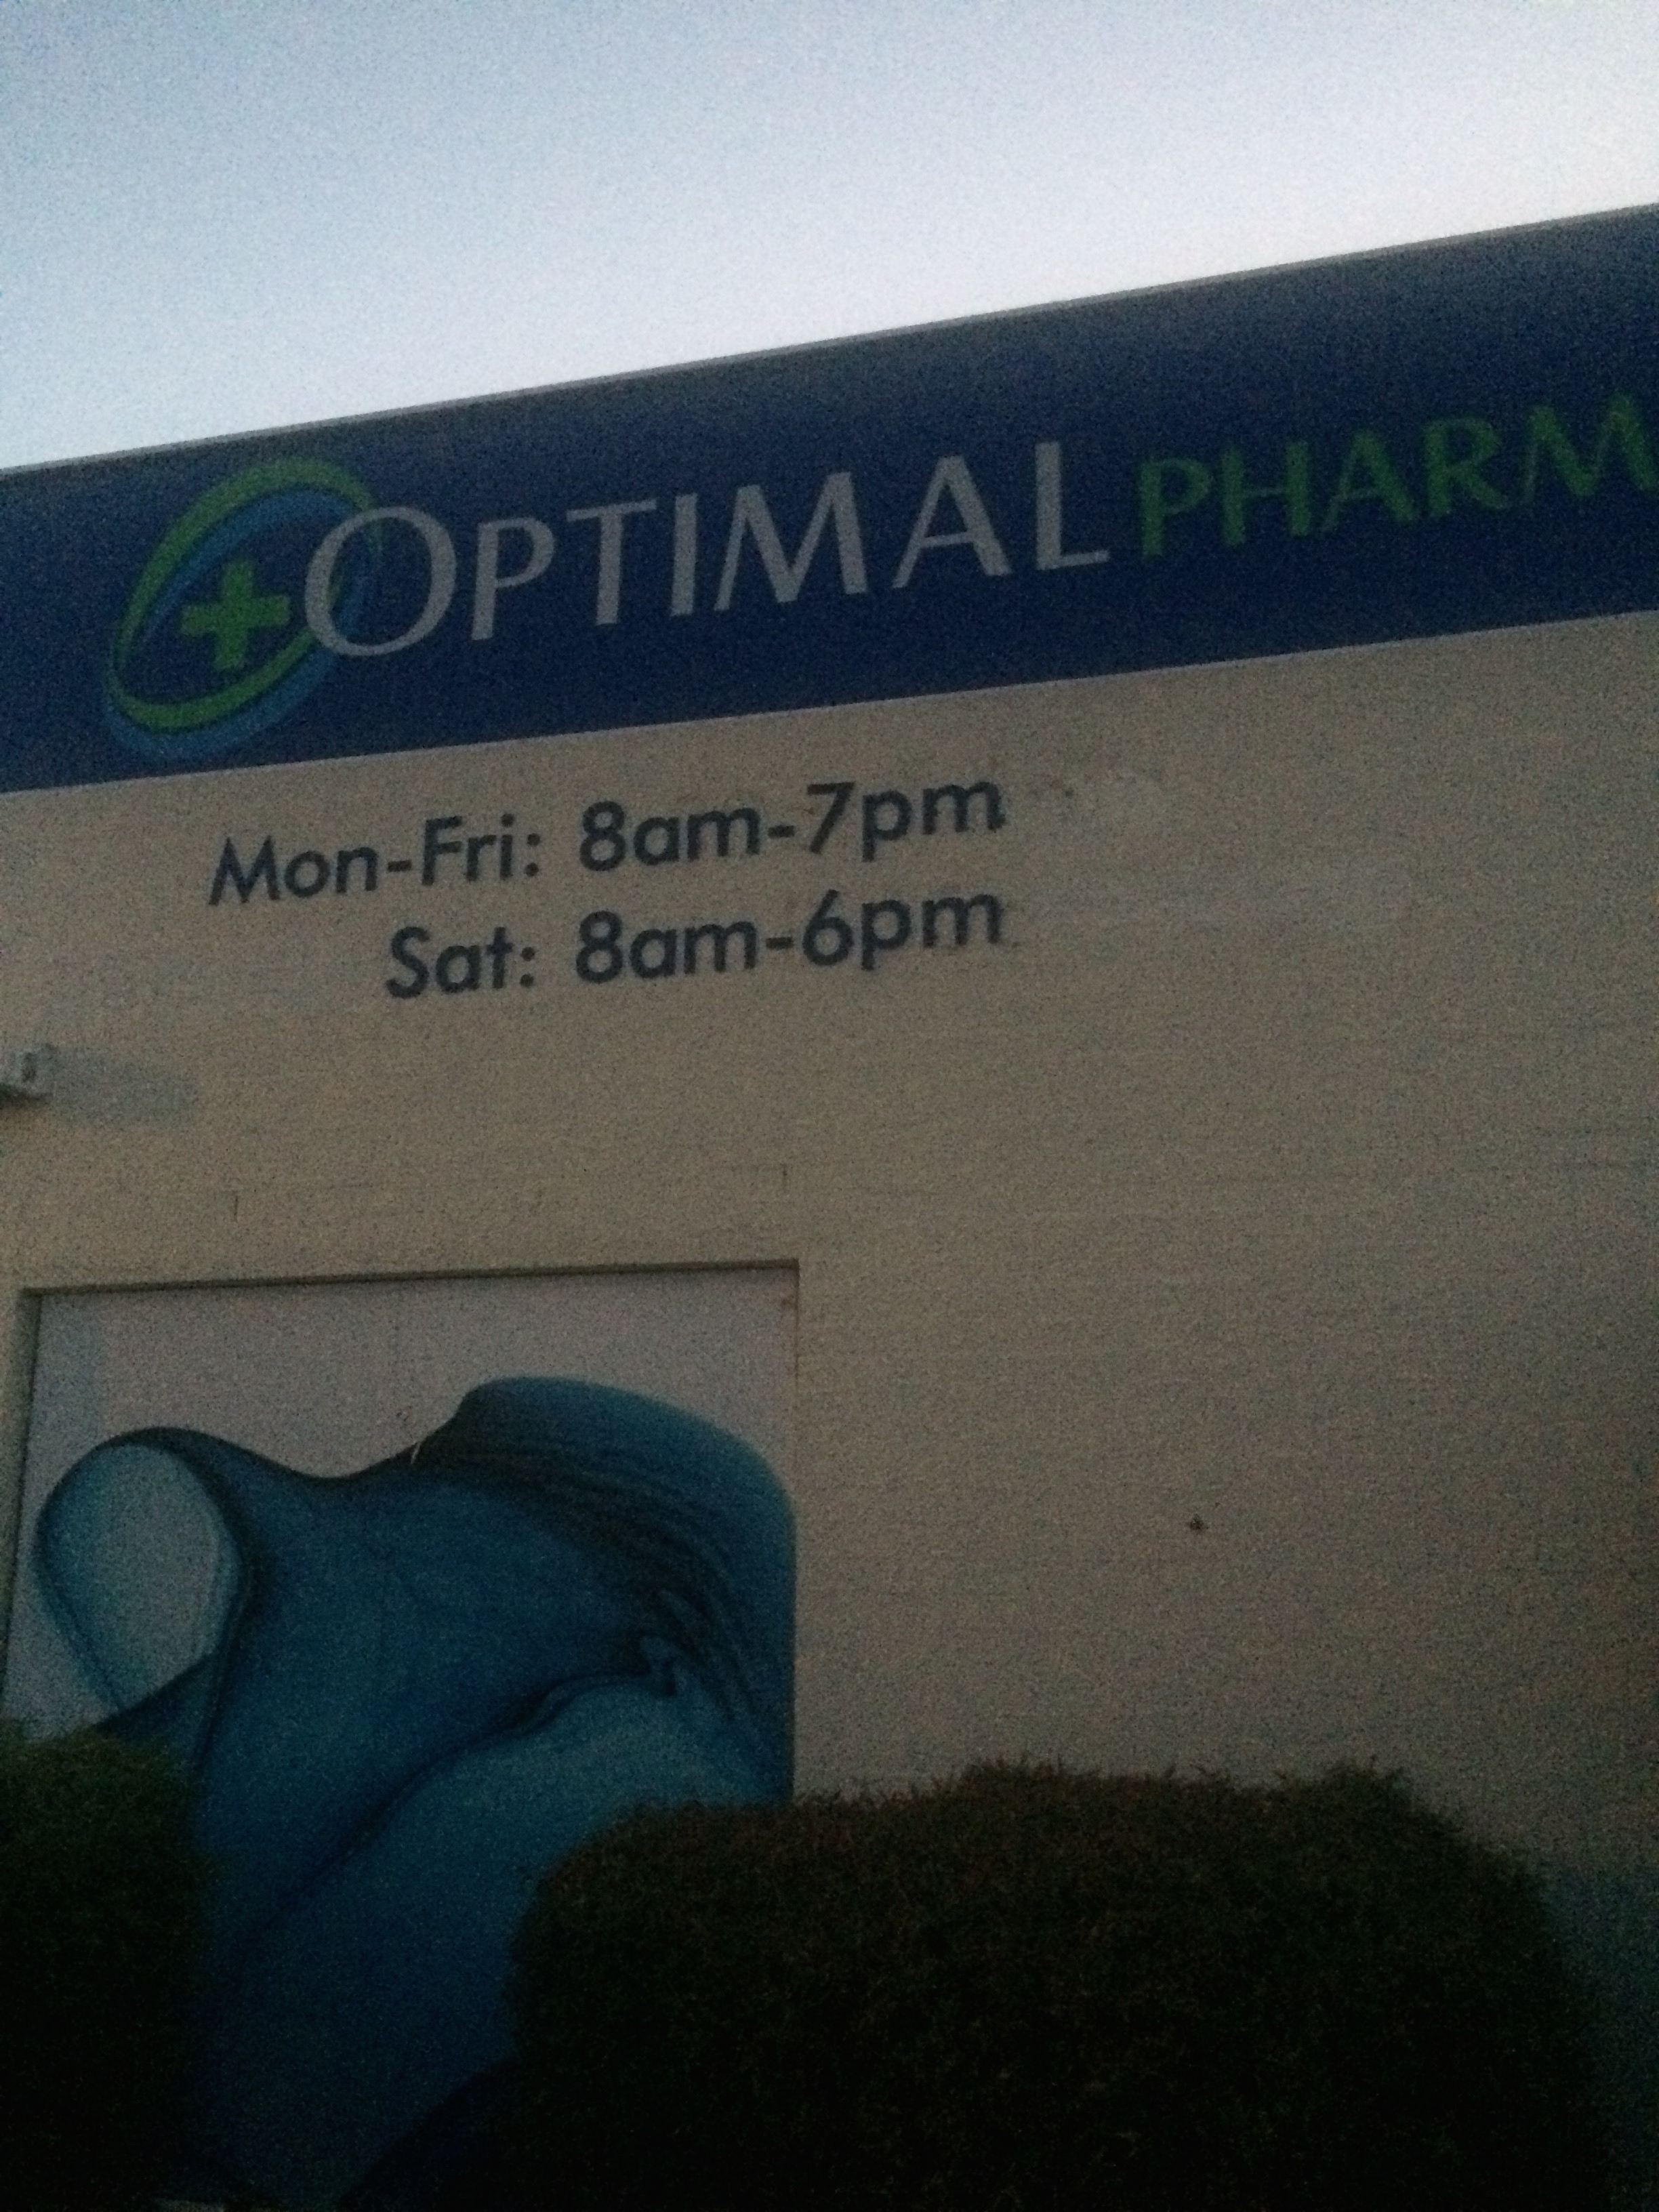 Optimal Pharmacy